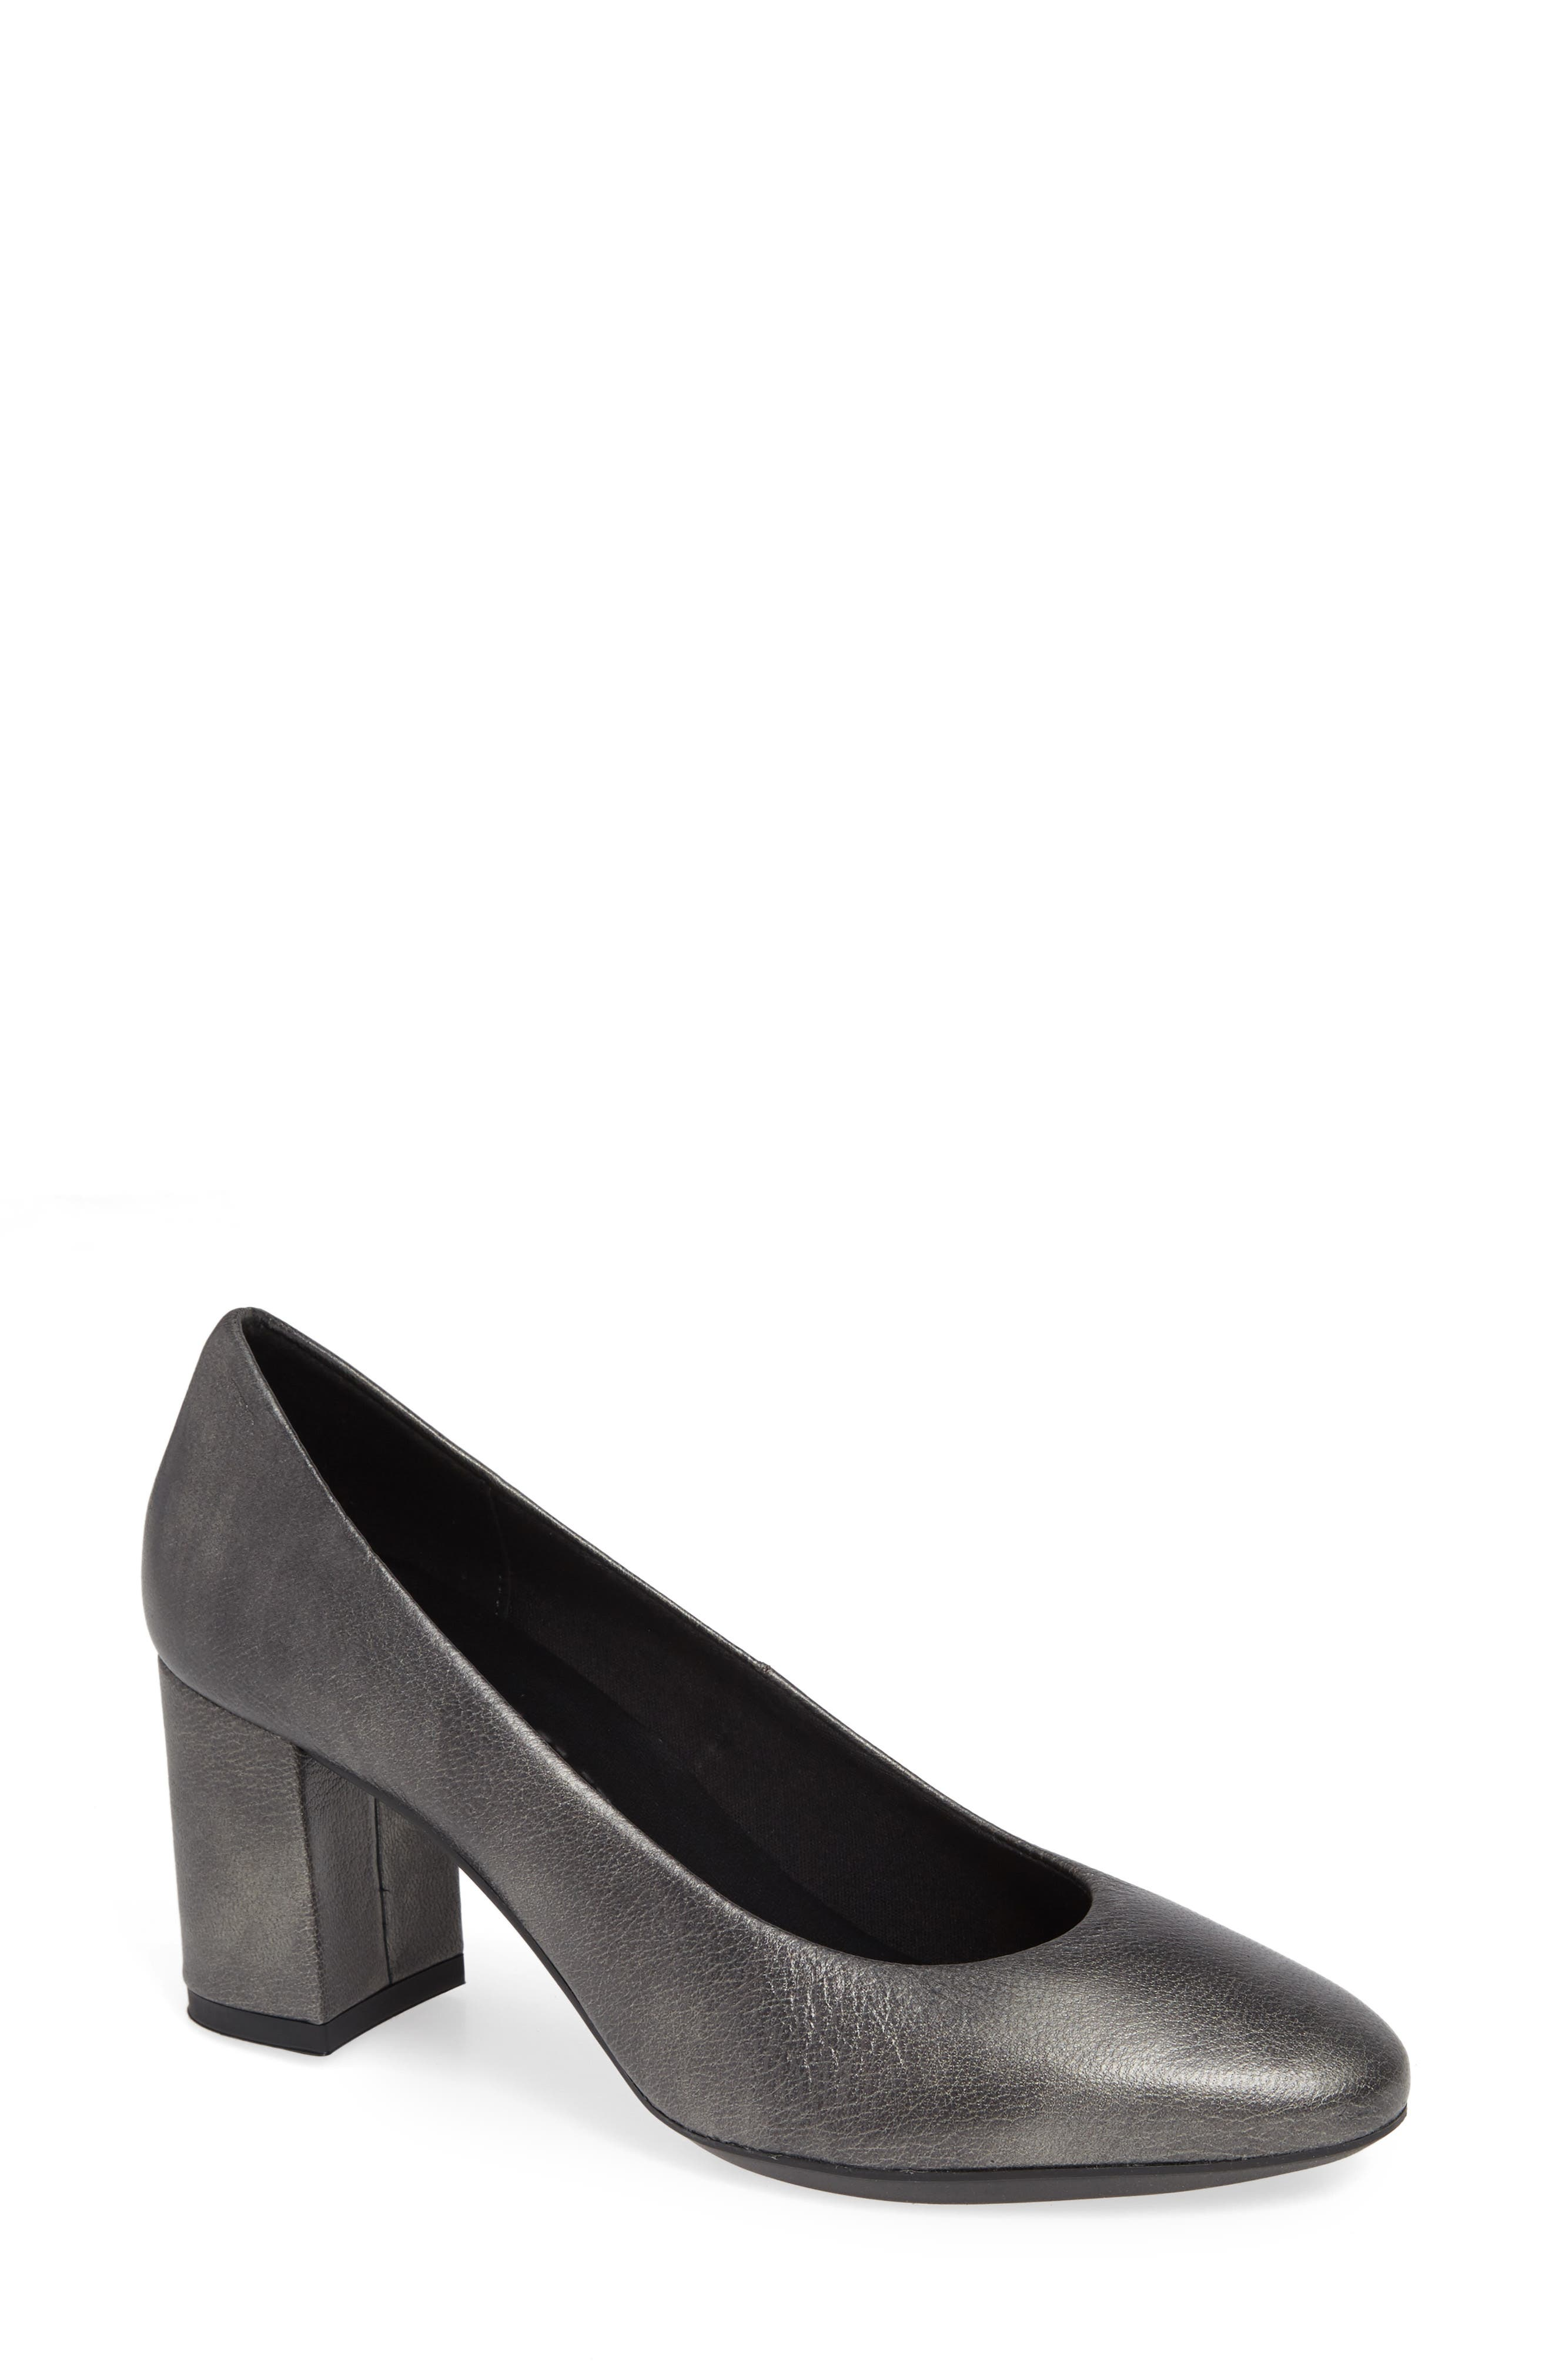 ,                             Seriously Pump,                             Main thumbnail 1, color,                             GREY LEATHER